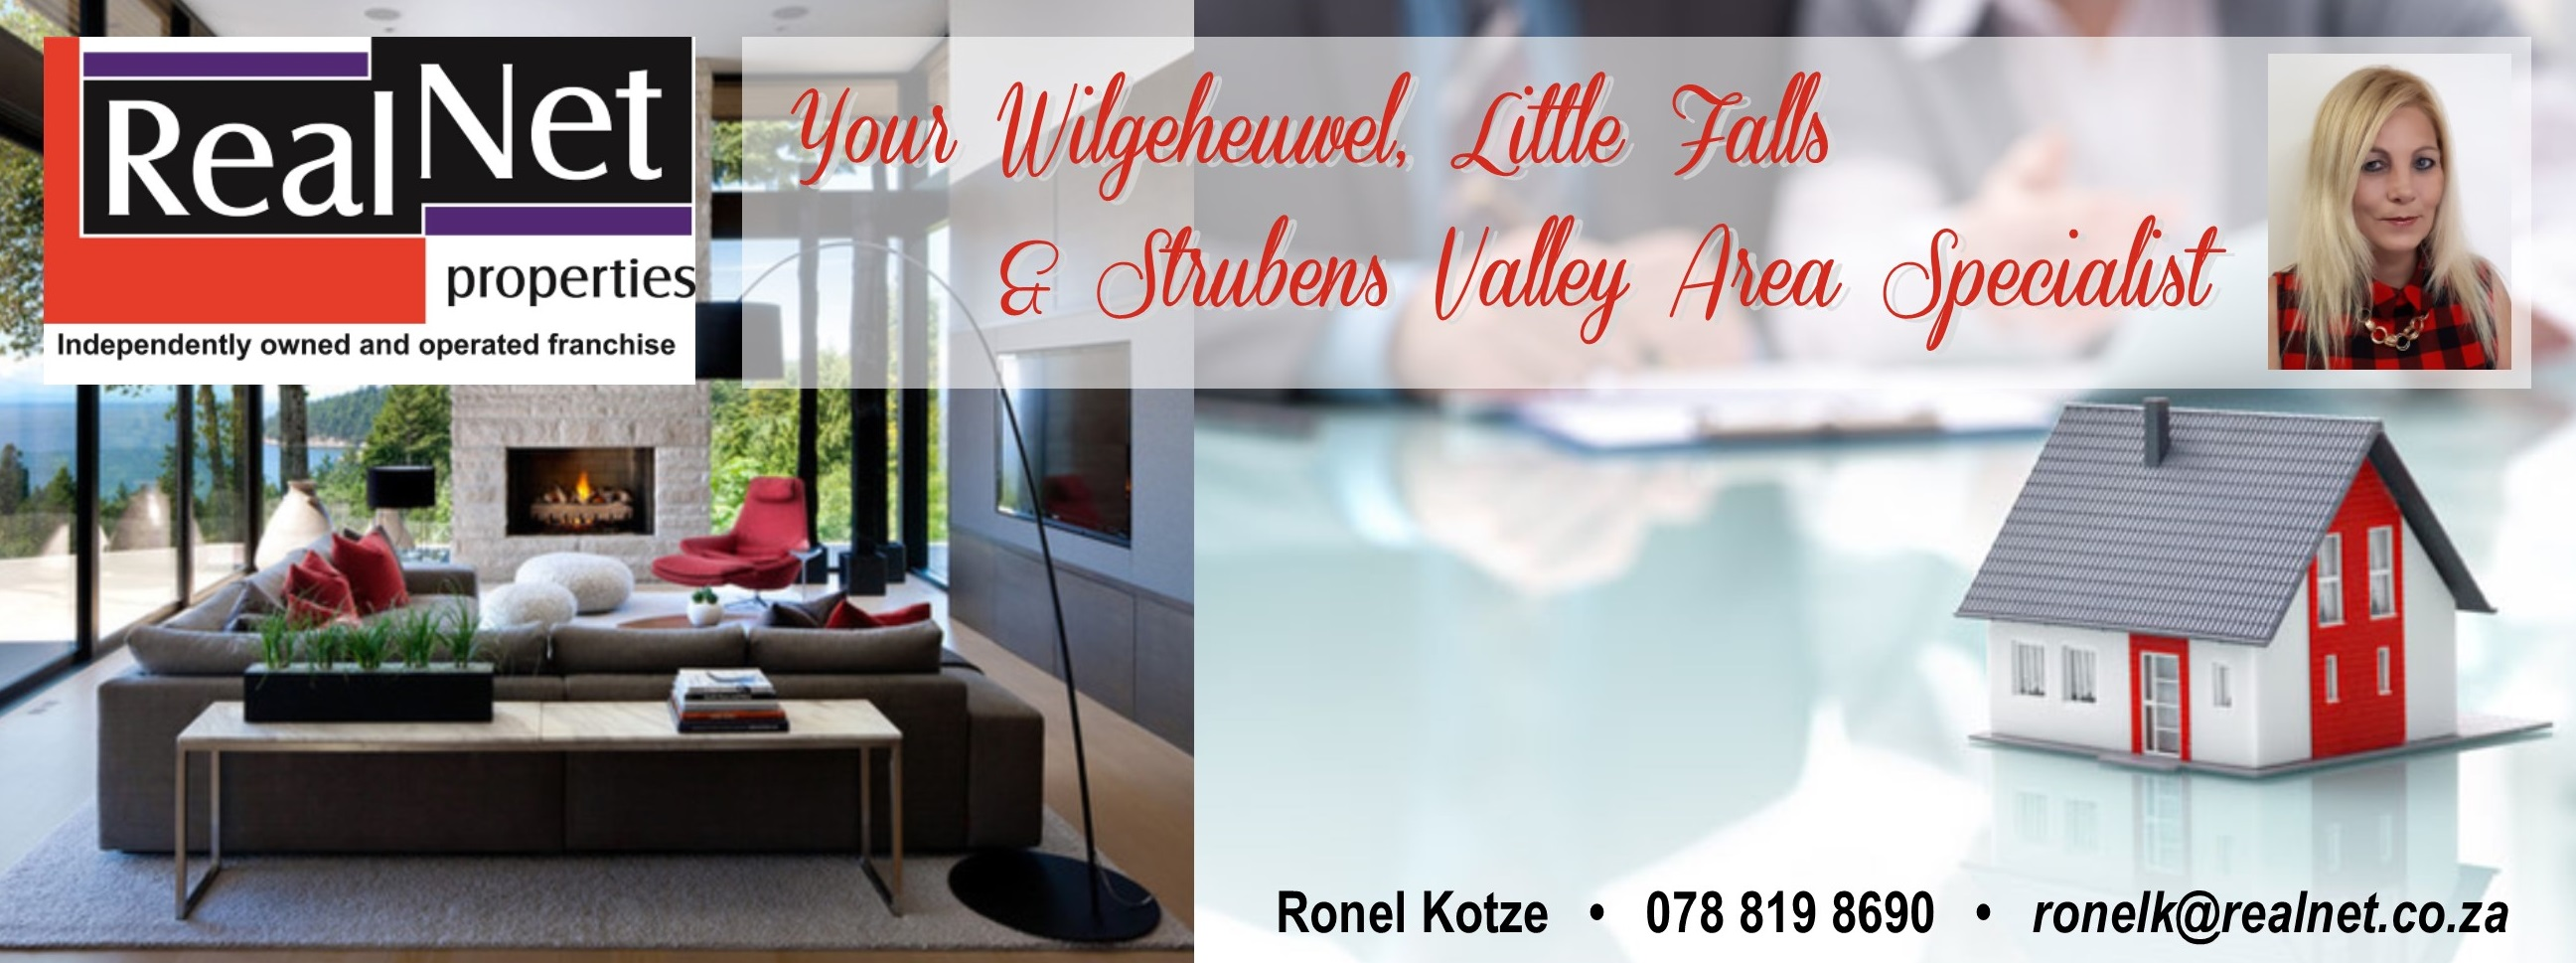 URGENTLY looking for Property for my buyers in Strubbensvalley, Wilro Park, Wilgeheuwel, Little Falls, Constantia Kloof